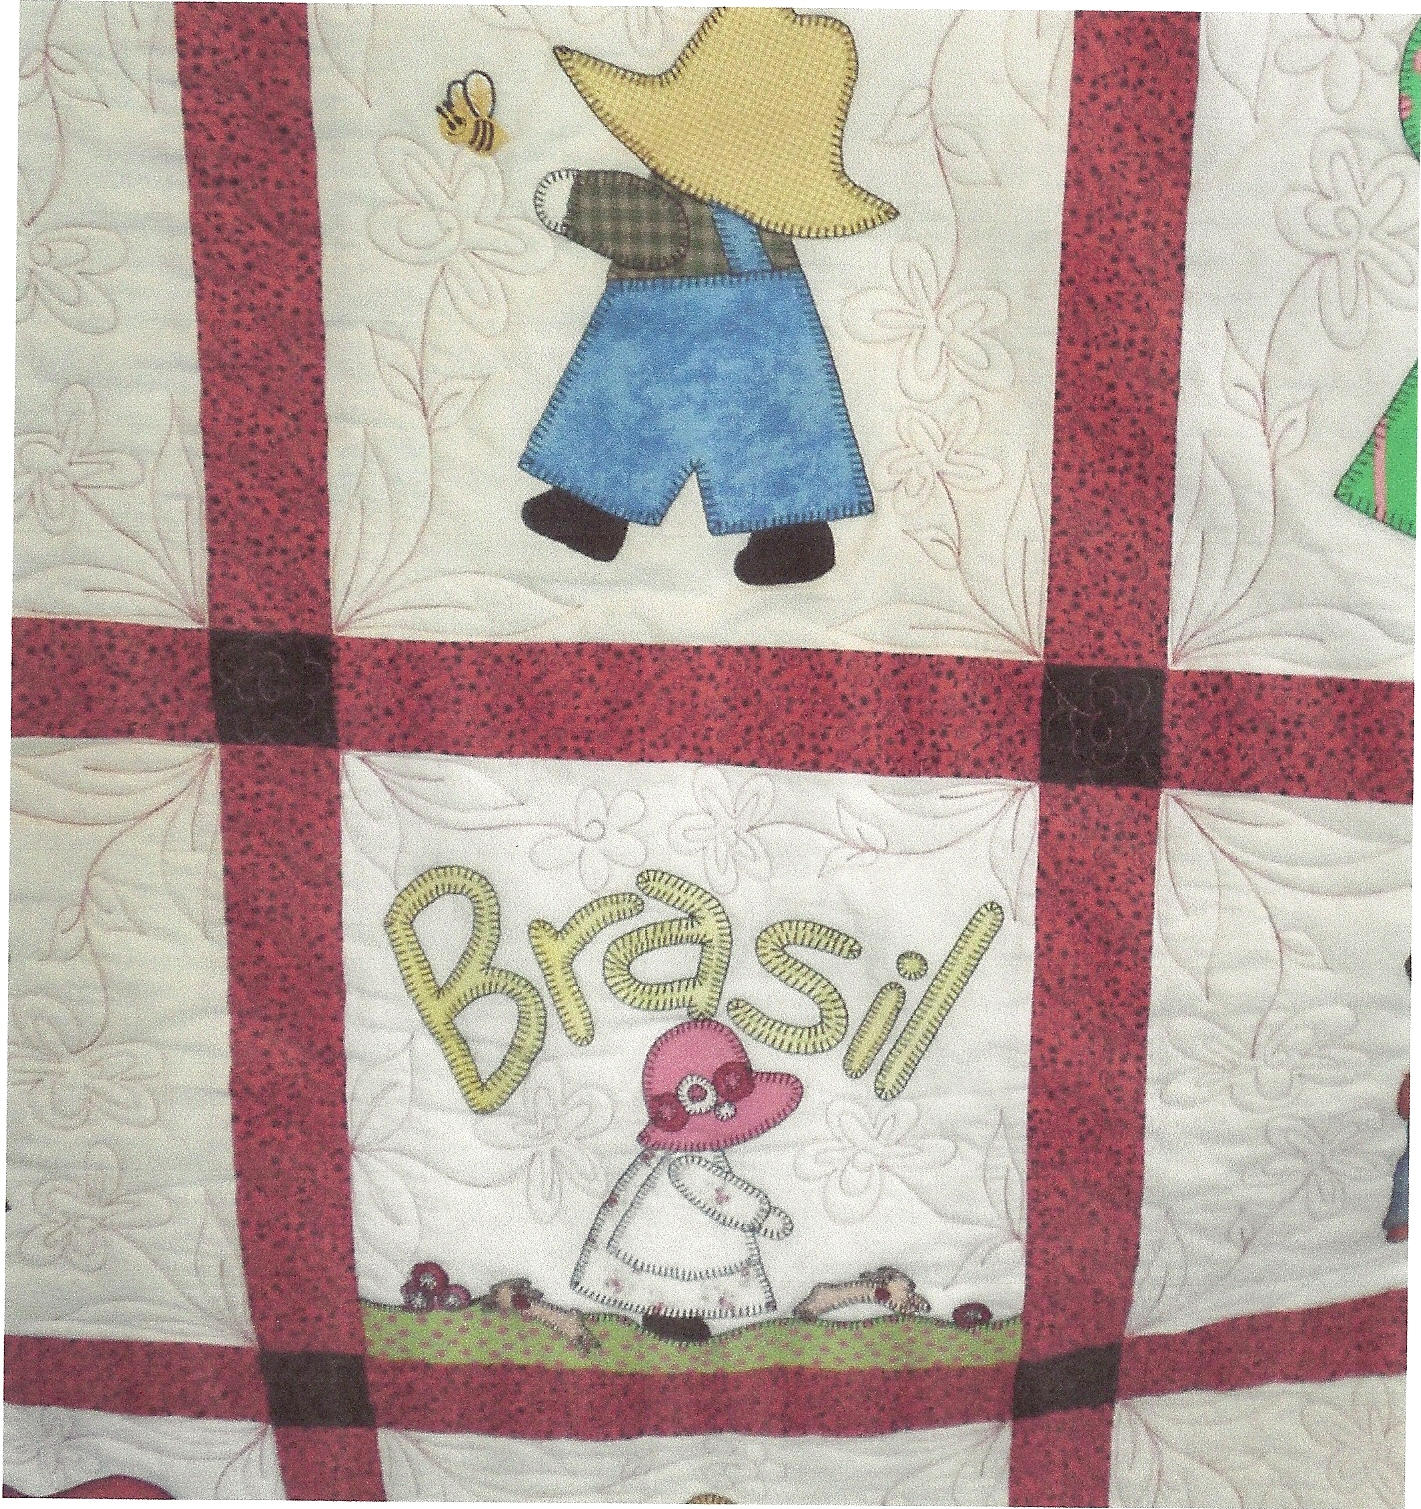 Want to discuss how i approach my own quilting